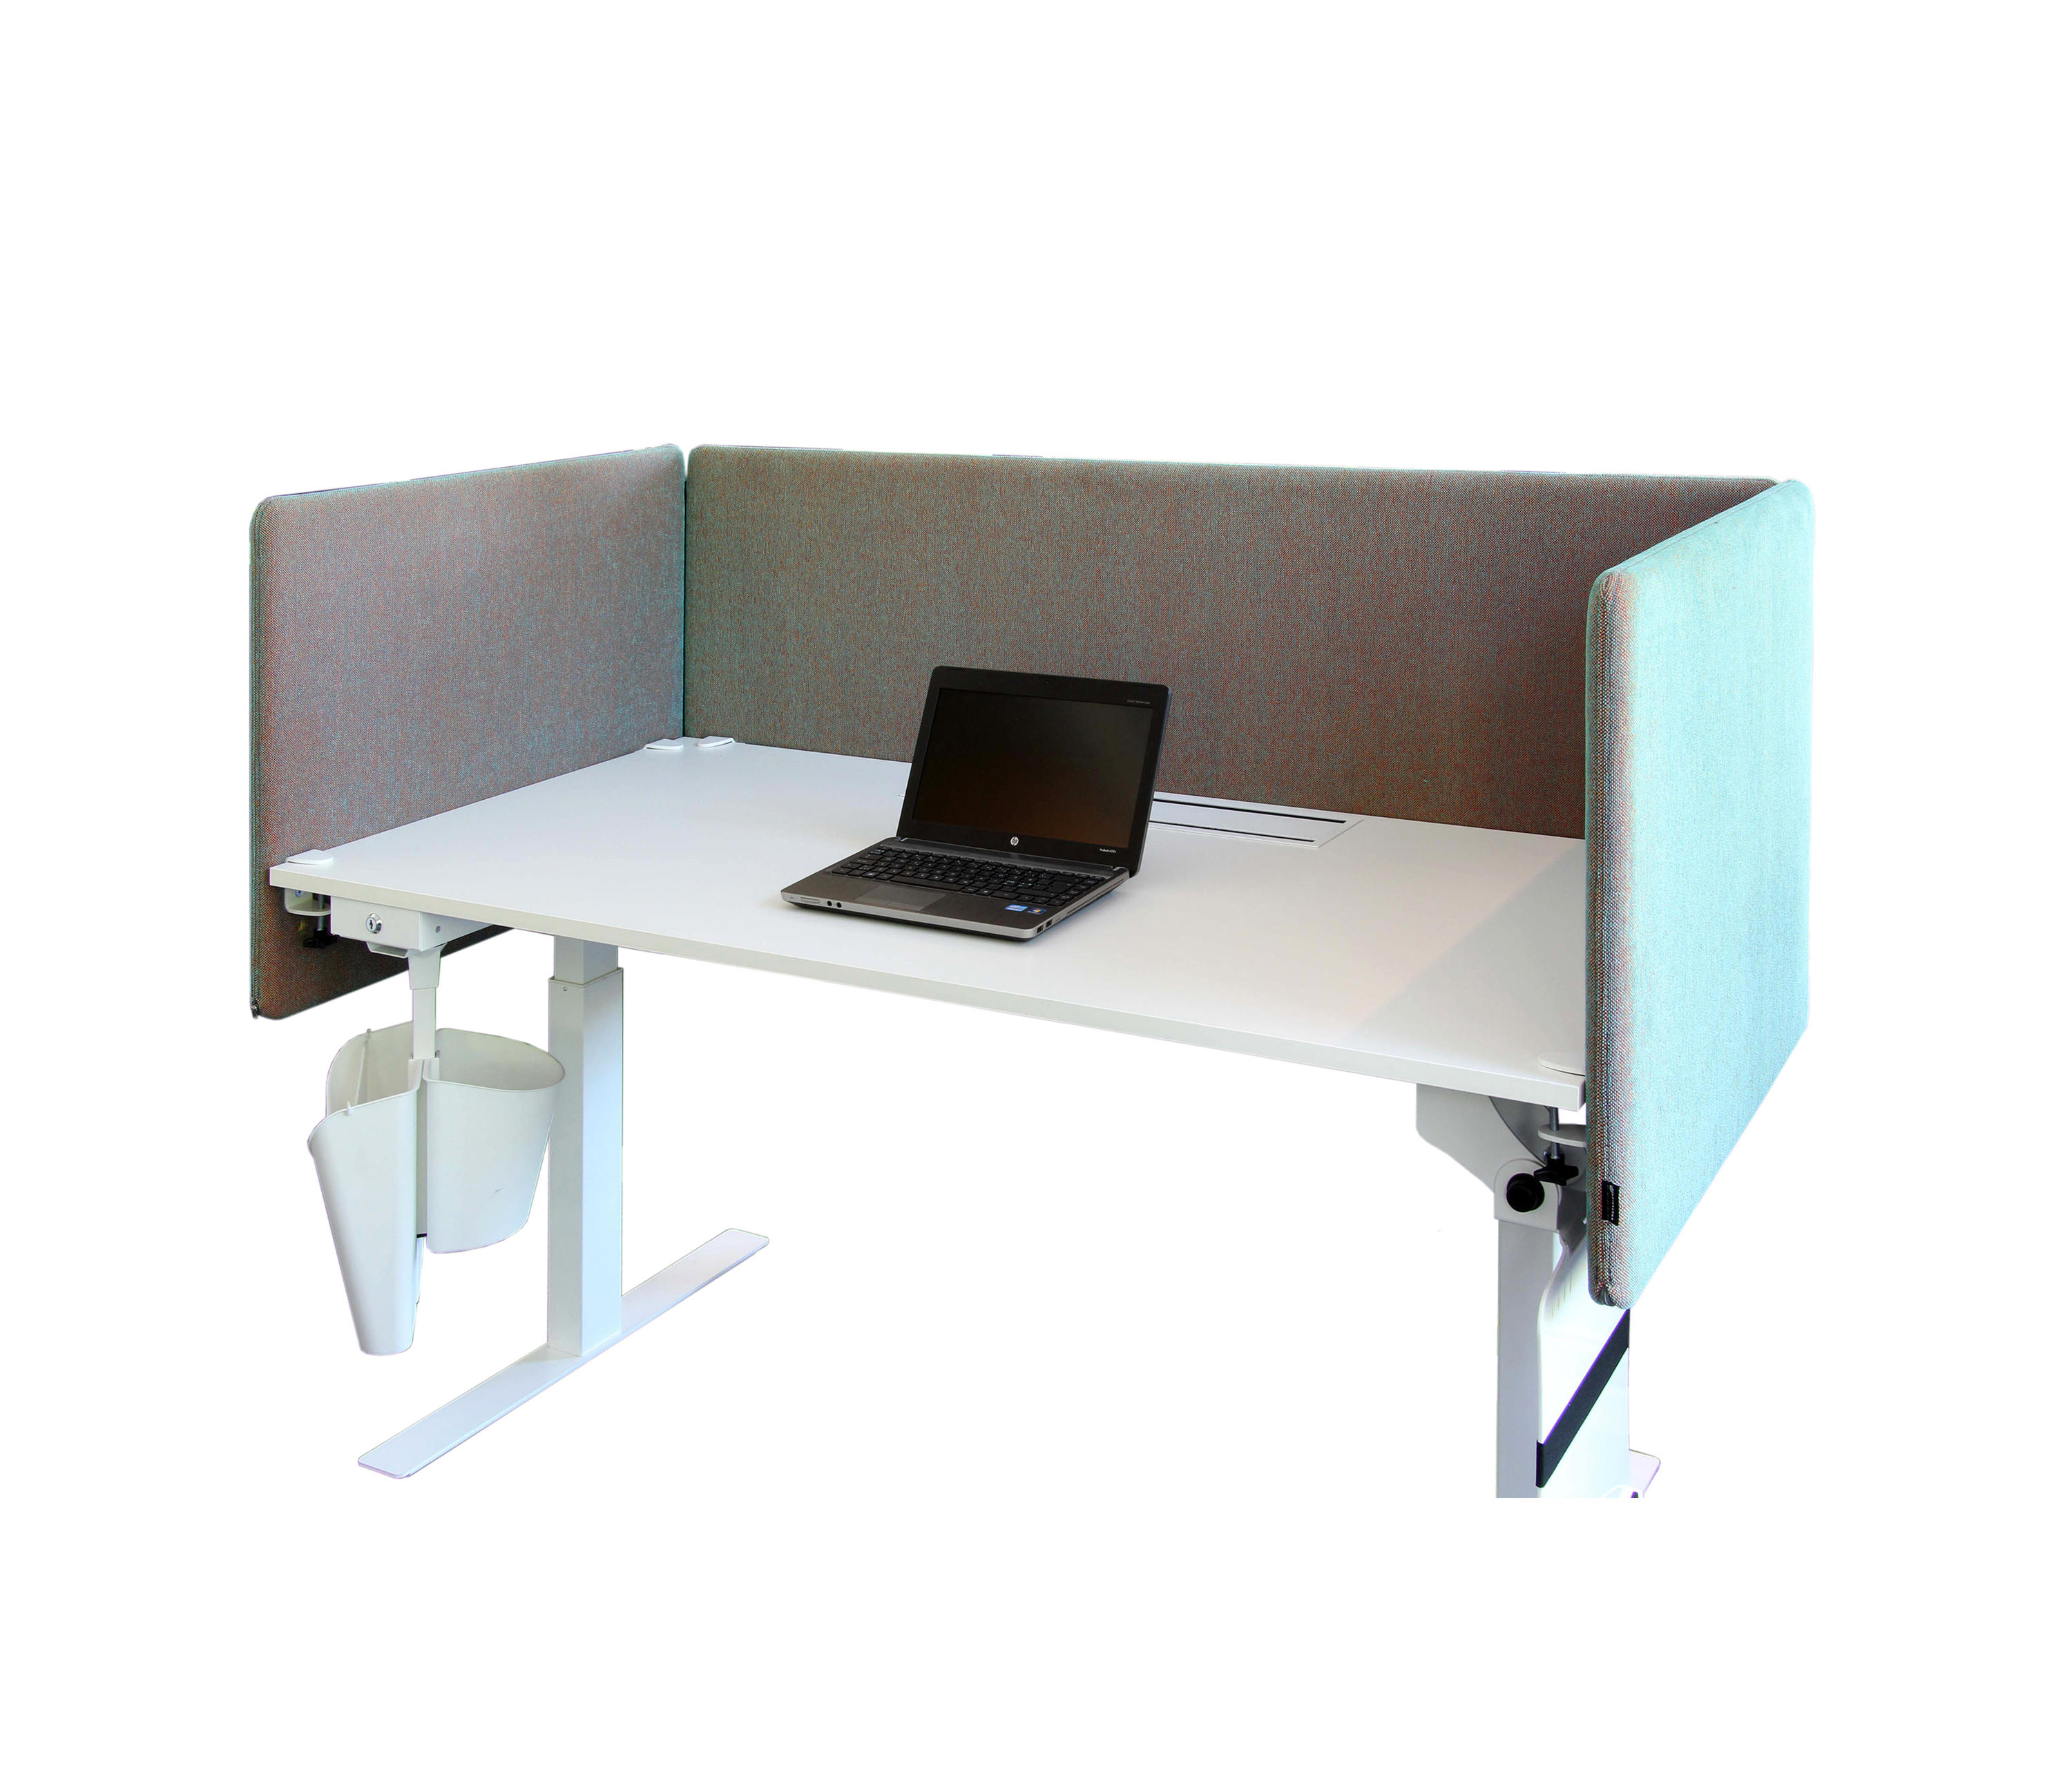 ScreenIT A30 Booth By Götessons | Table Dividers